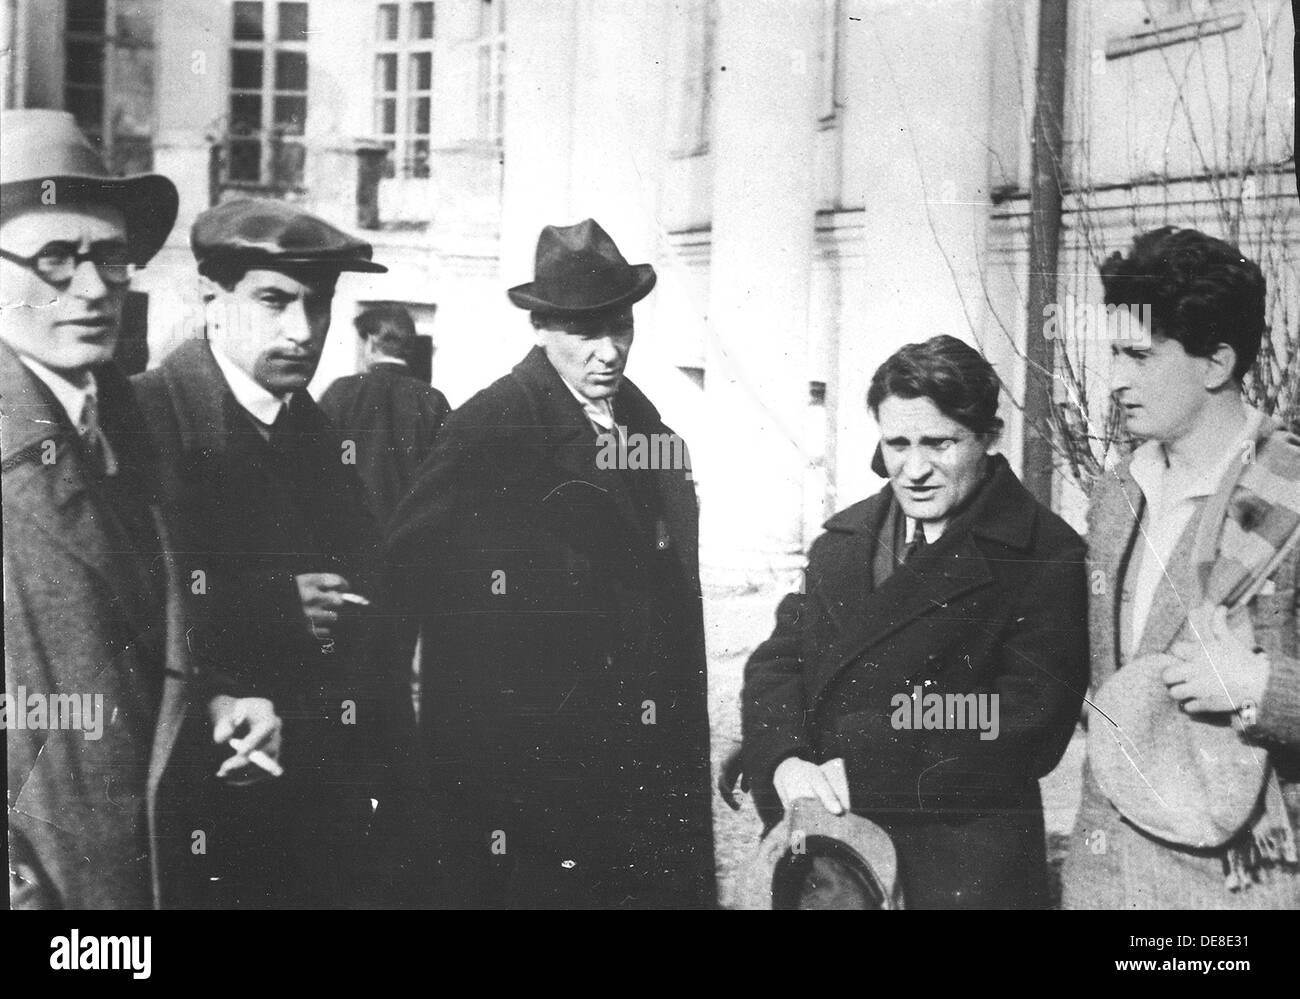 Michail Fainsilberg, Valentin Kataev, Mikhail Bulgakov, Yury Olesha and Iosif Utkin at the Funeral of Vladimir Mayakovsky. Artis - Stock Image